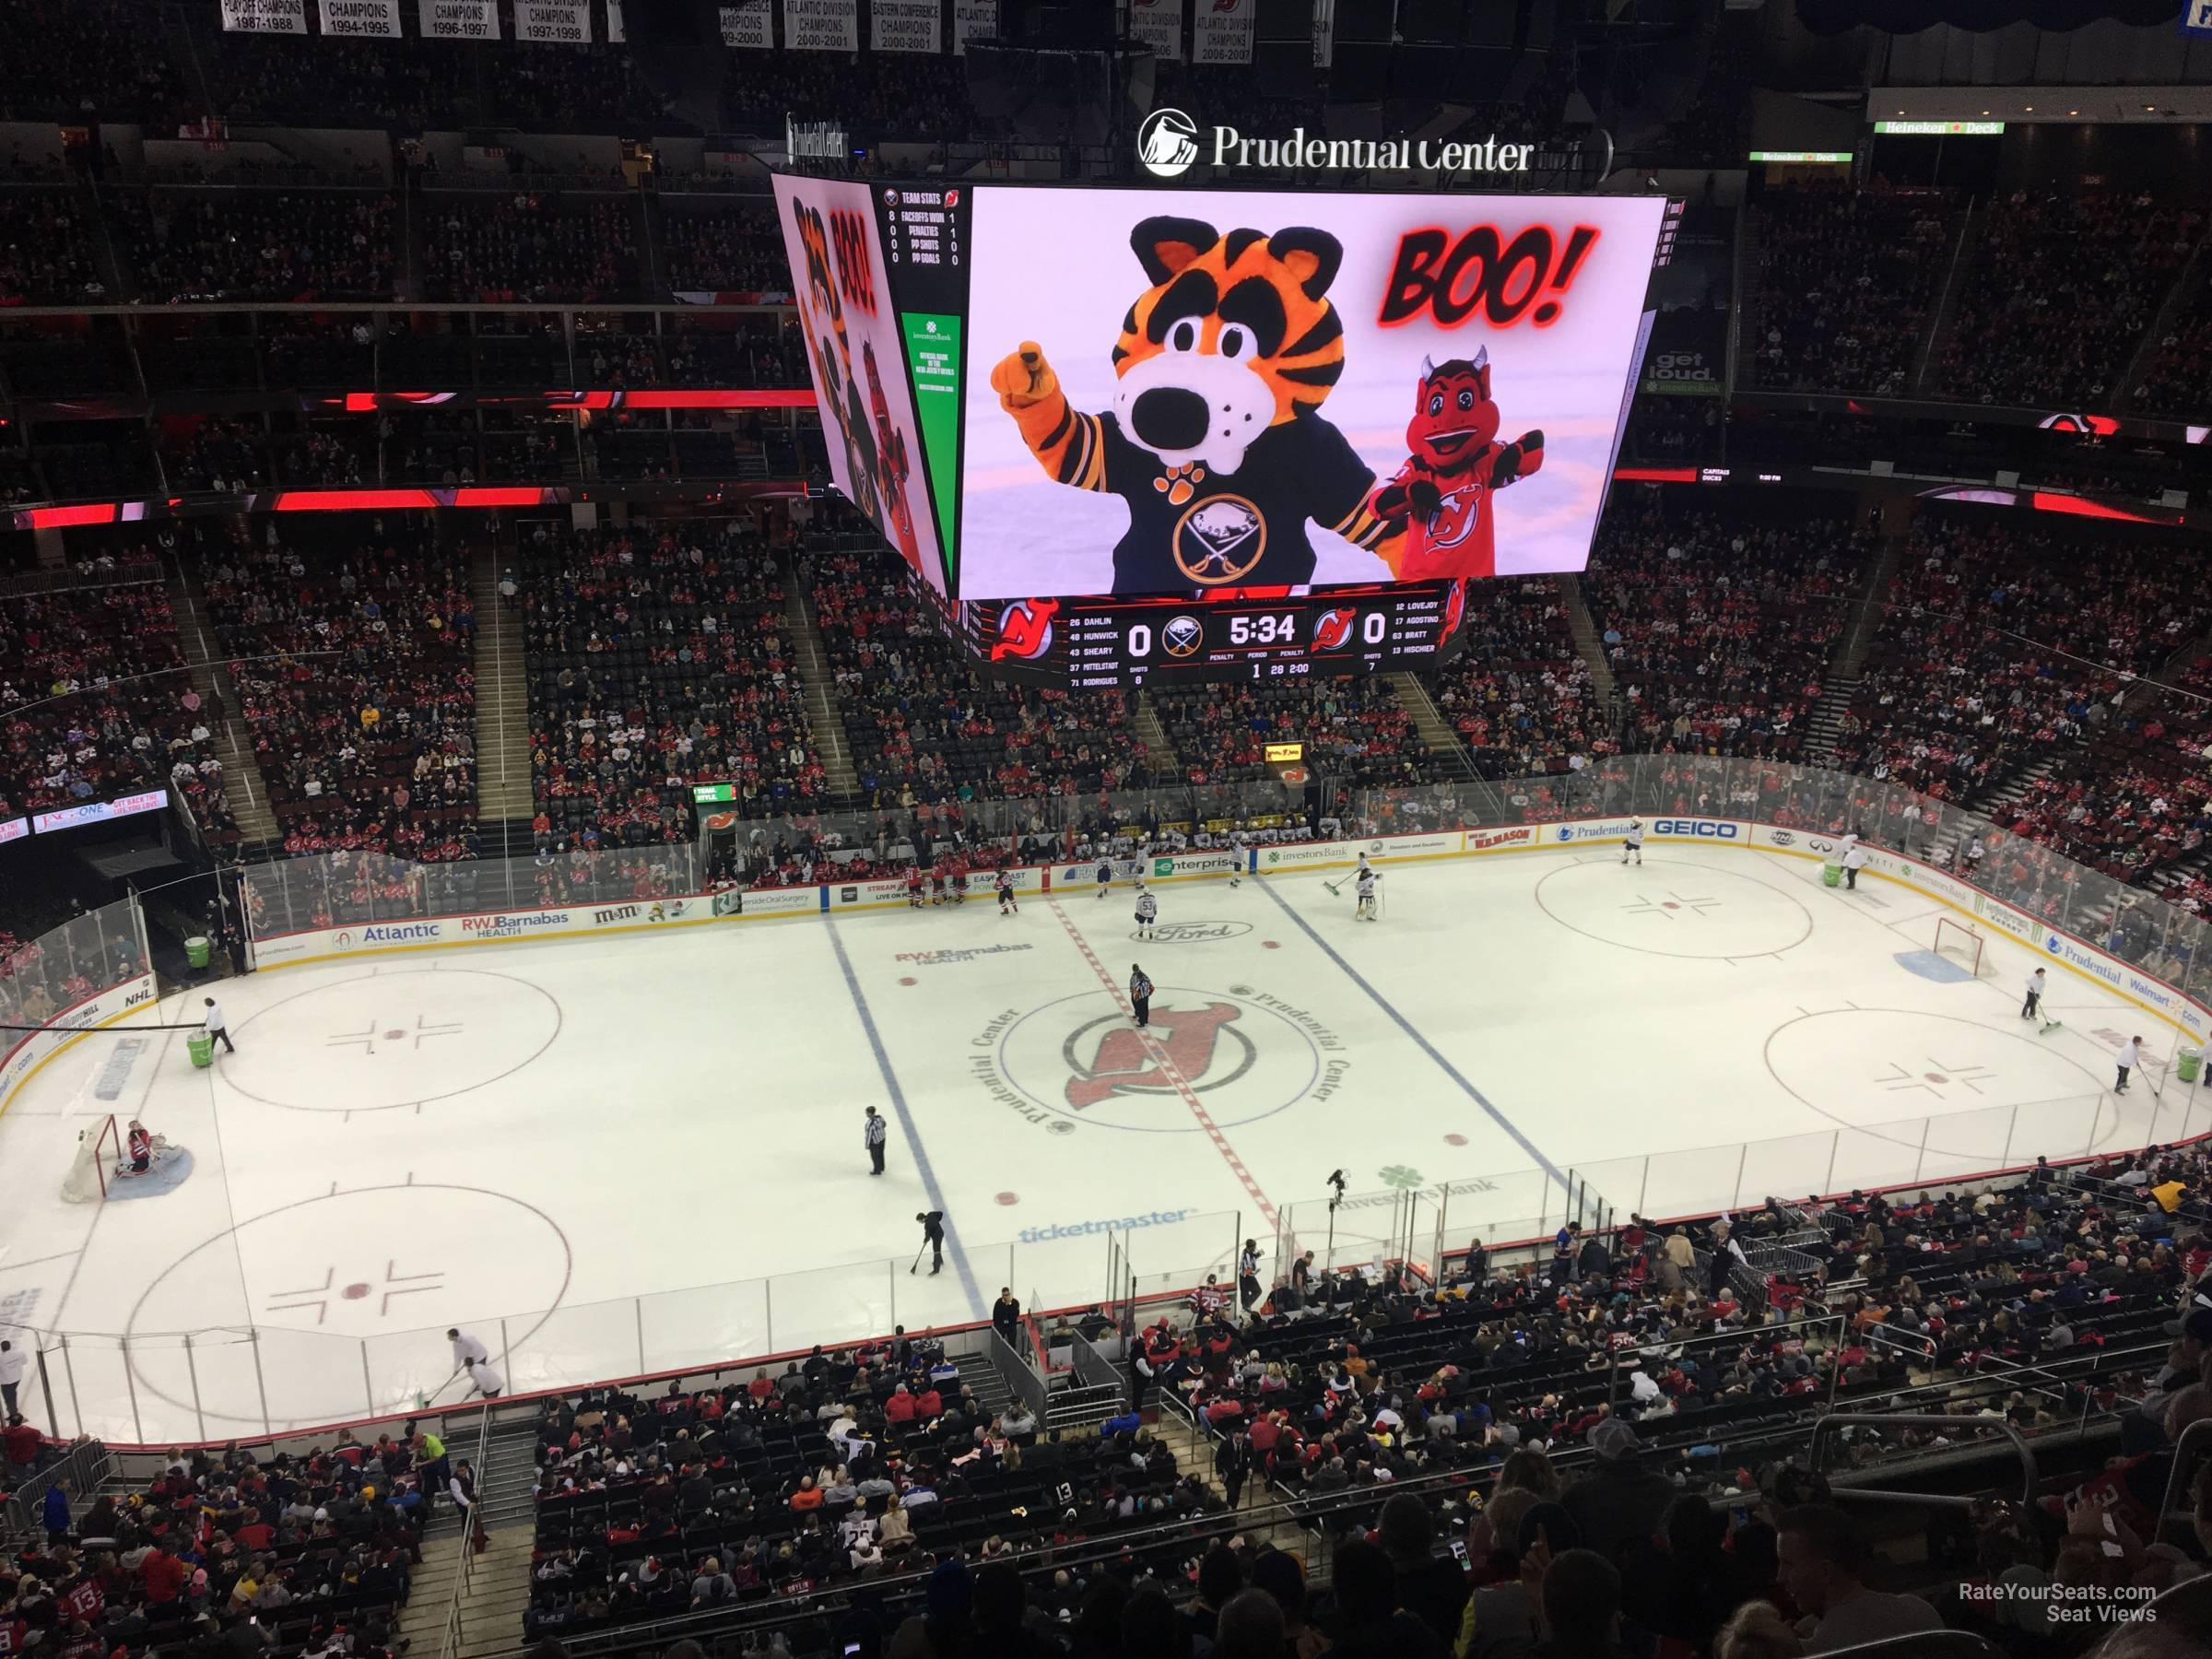 New Jersey Devils Seat View for Prudential Center Section 127, Row 6